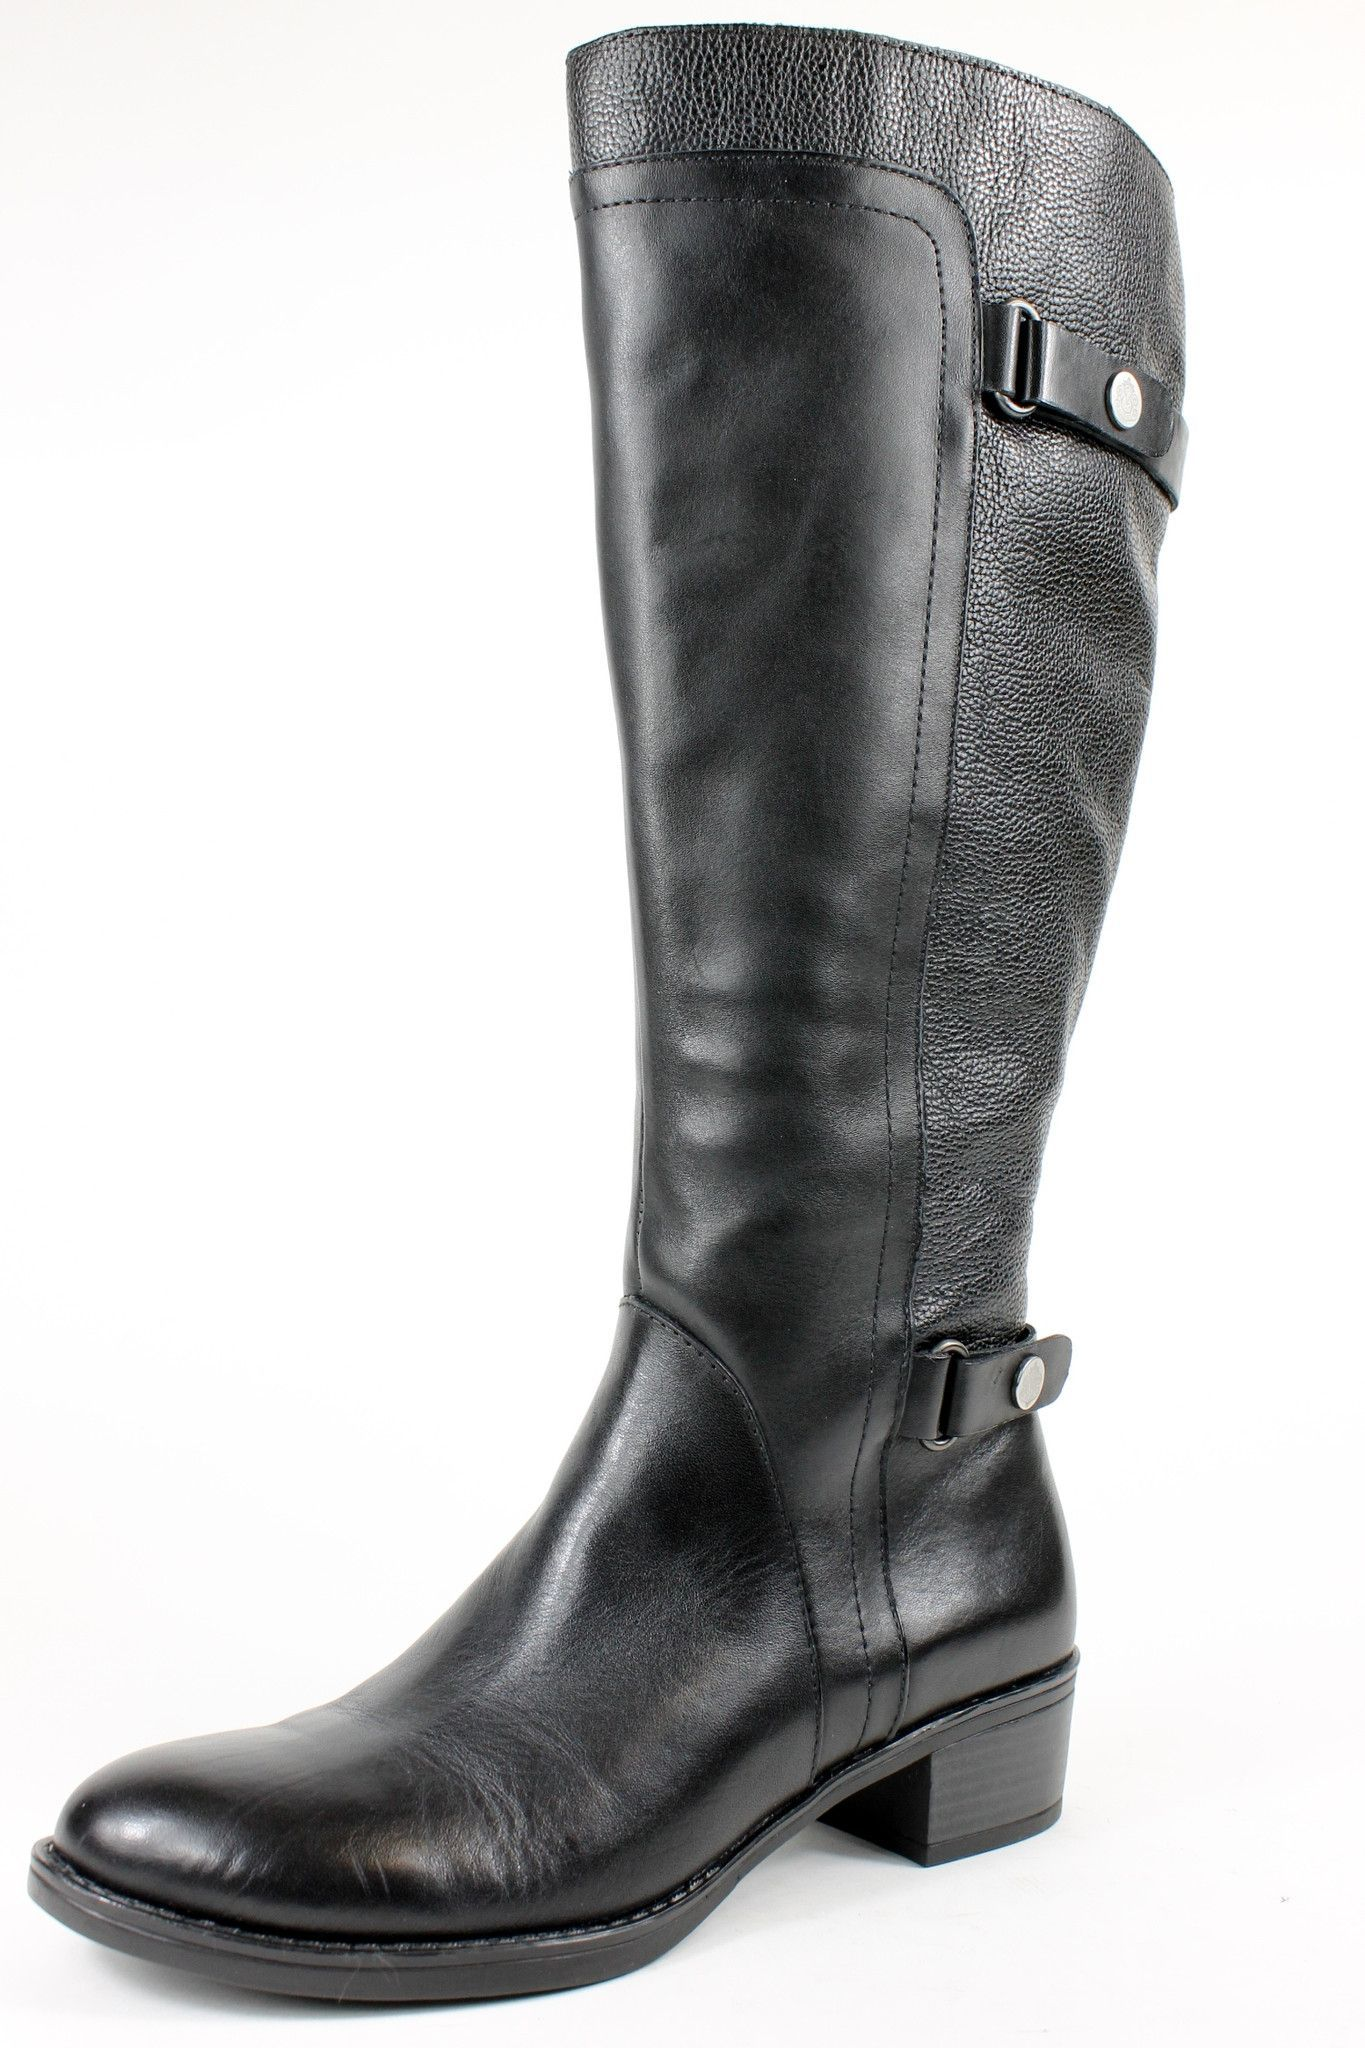 Black Leather Knee-High Wide Calf Boots